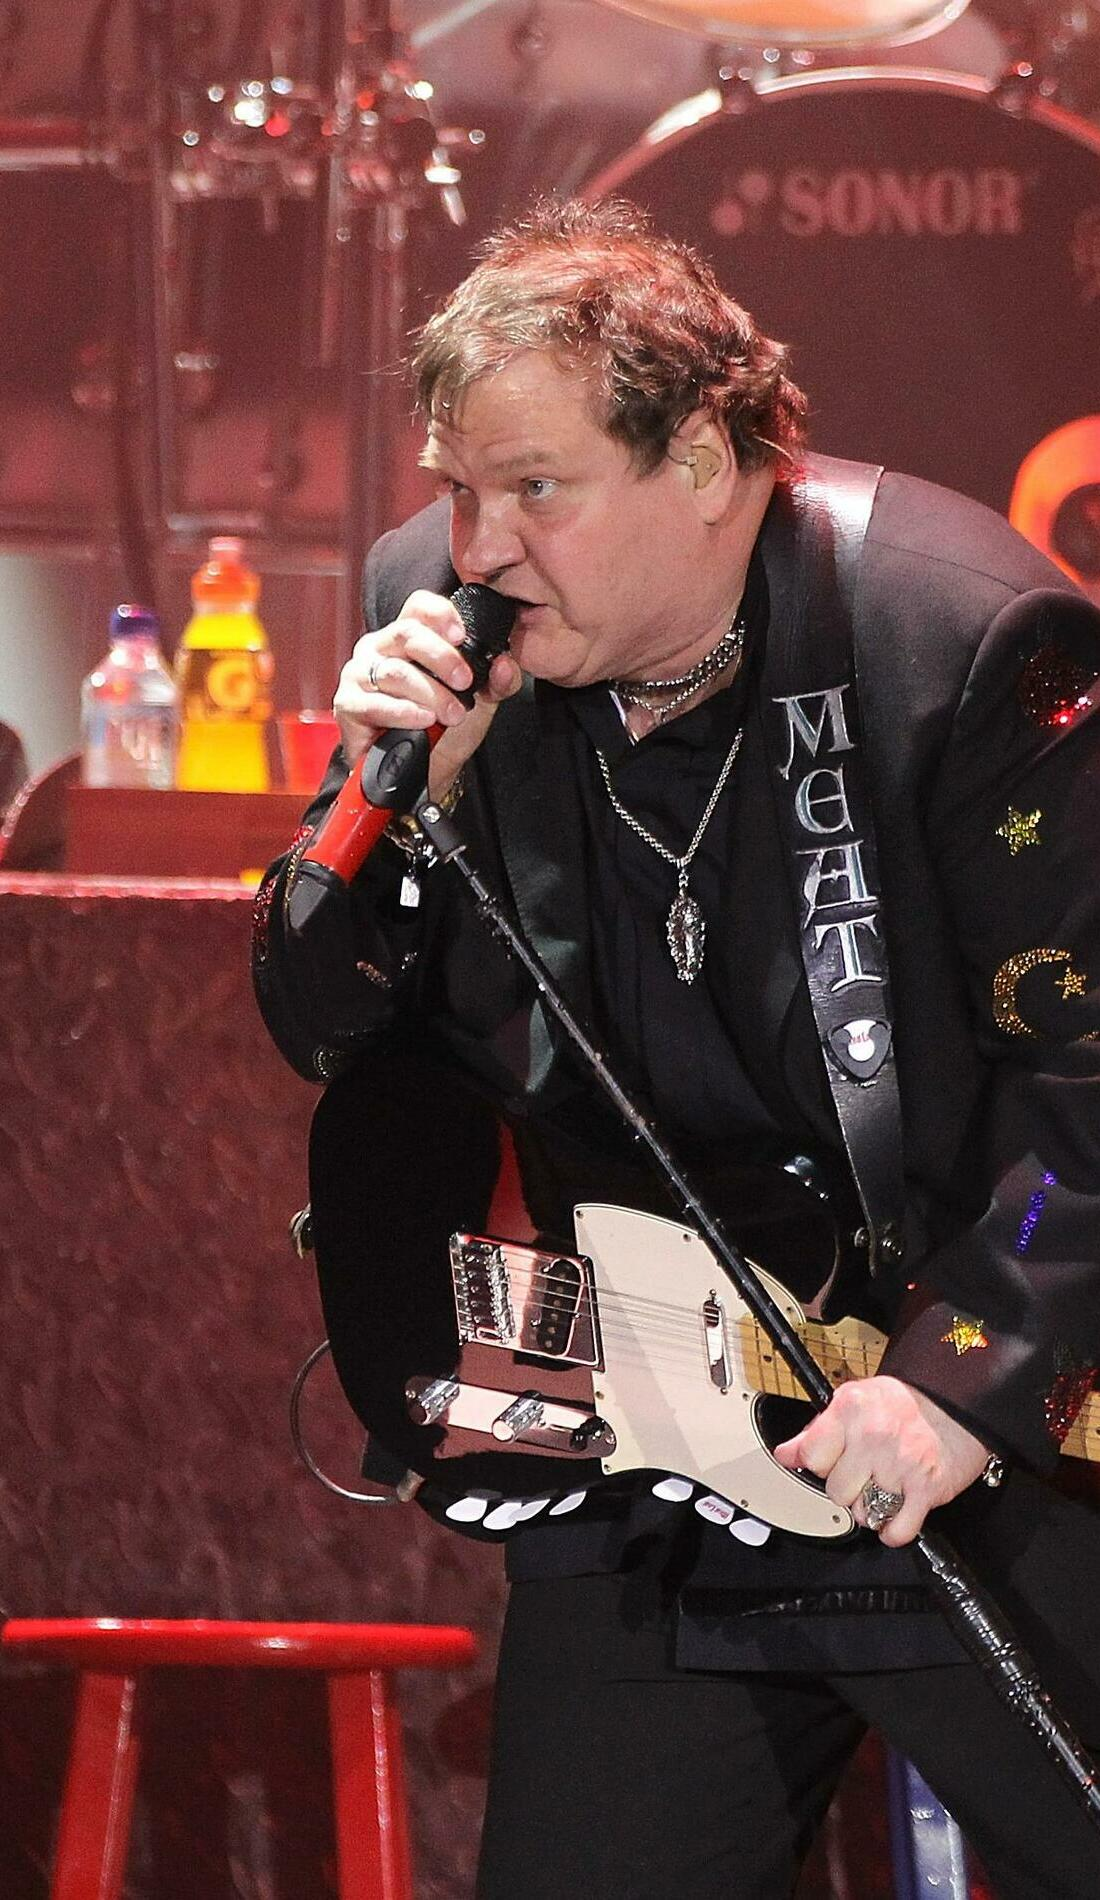 A Meat Loaf live event